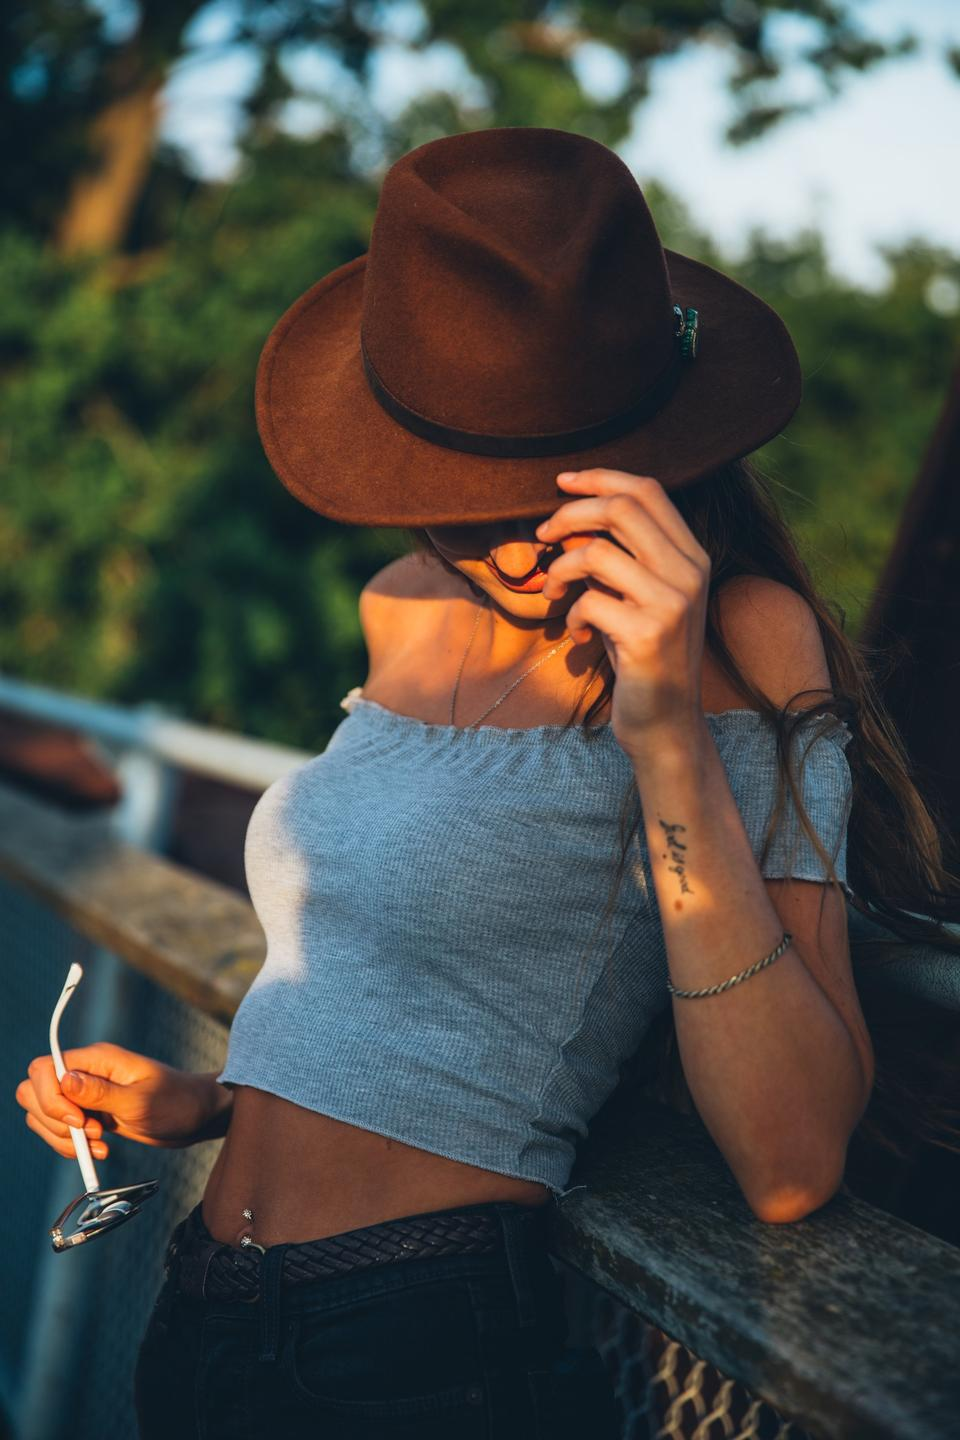 a fashionable woman tips her hat